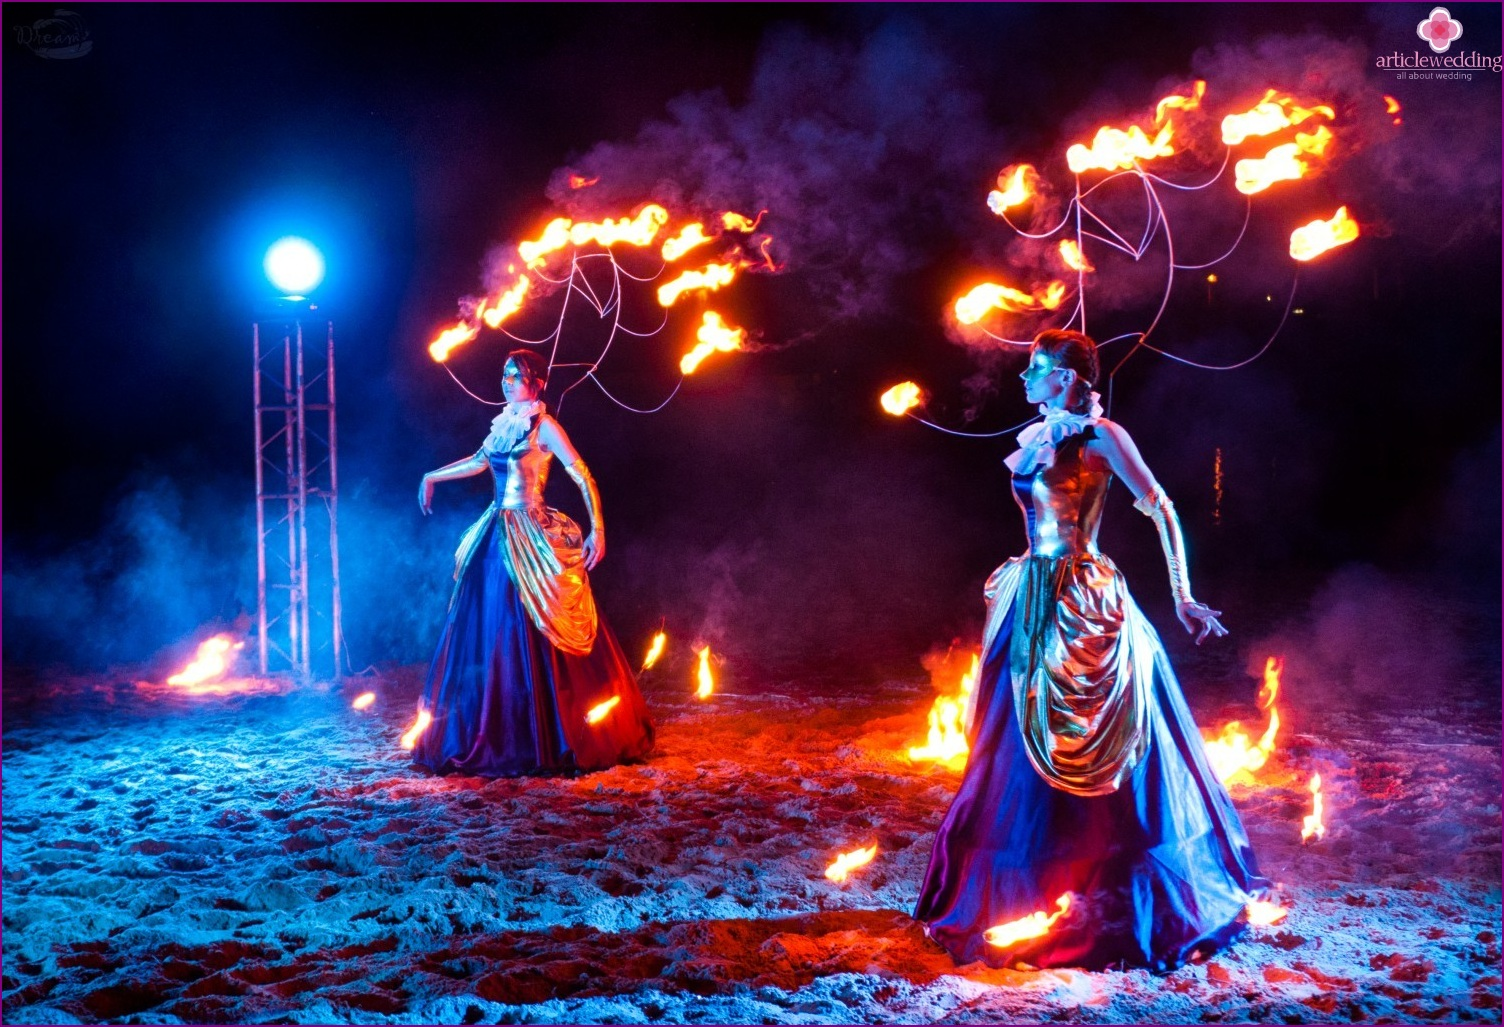 Fire show at a wedding in the style of masquerade